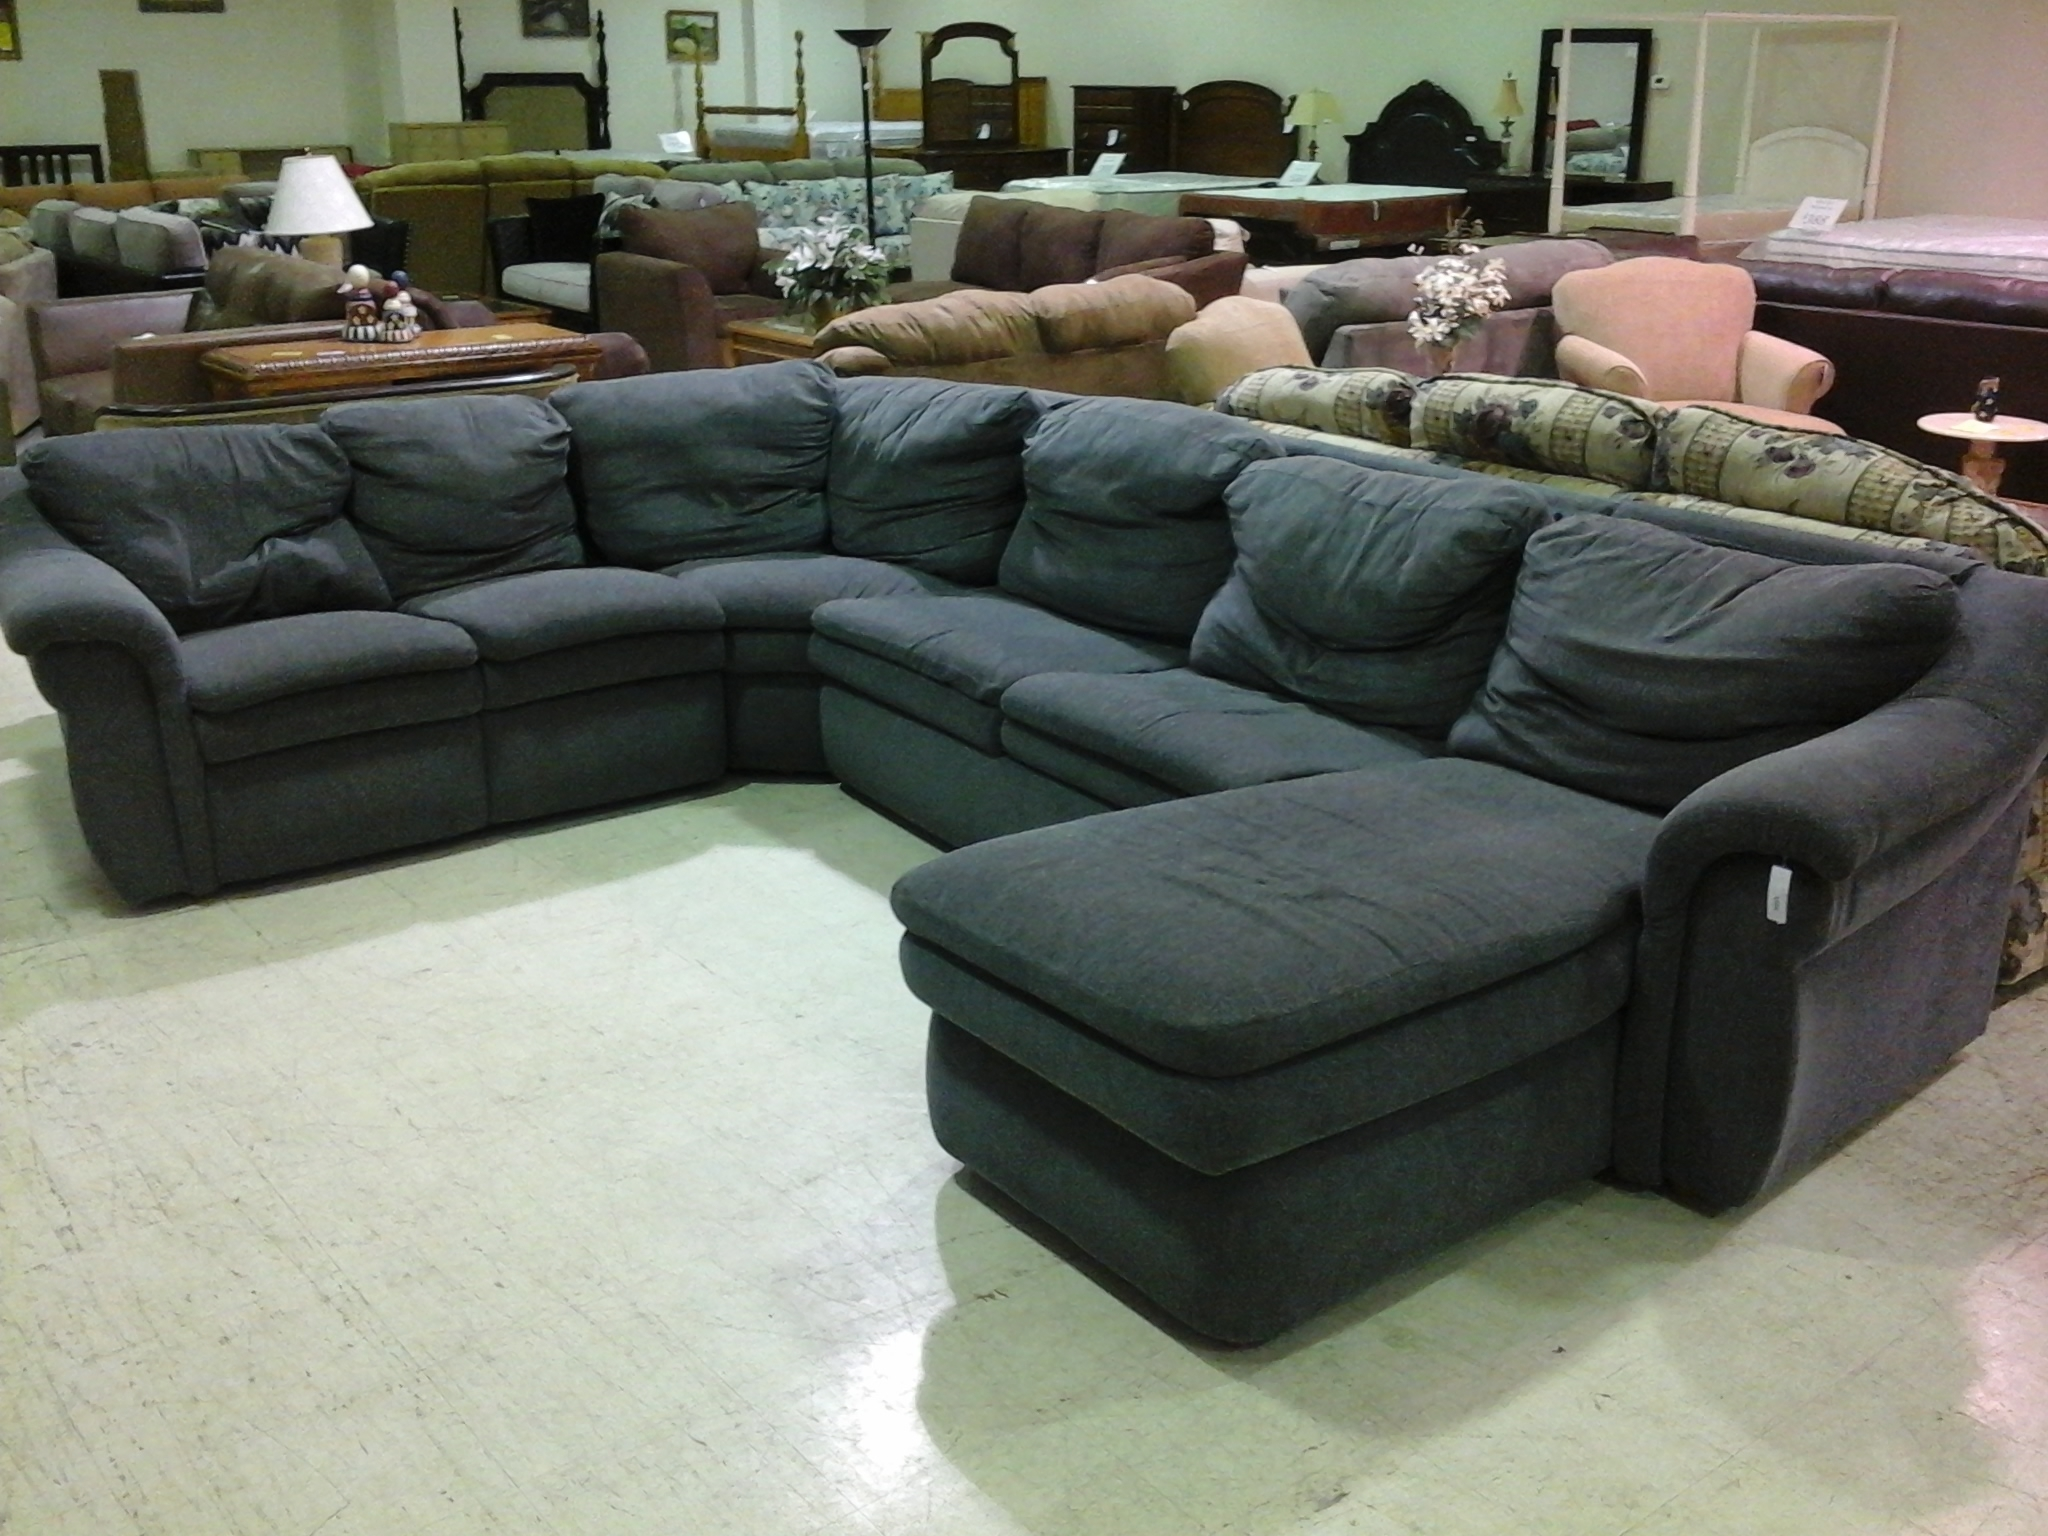 Queen Sofa Sleeper Sectional Microfiber – Cleanupflorida Inside Sleek Sectional Sofas (View 10 of 10)